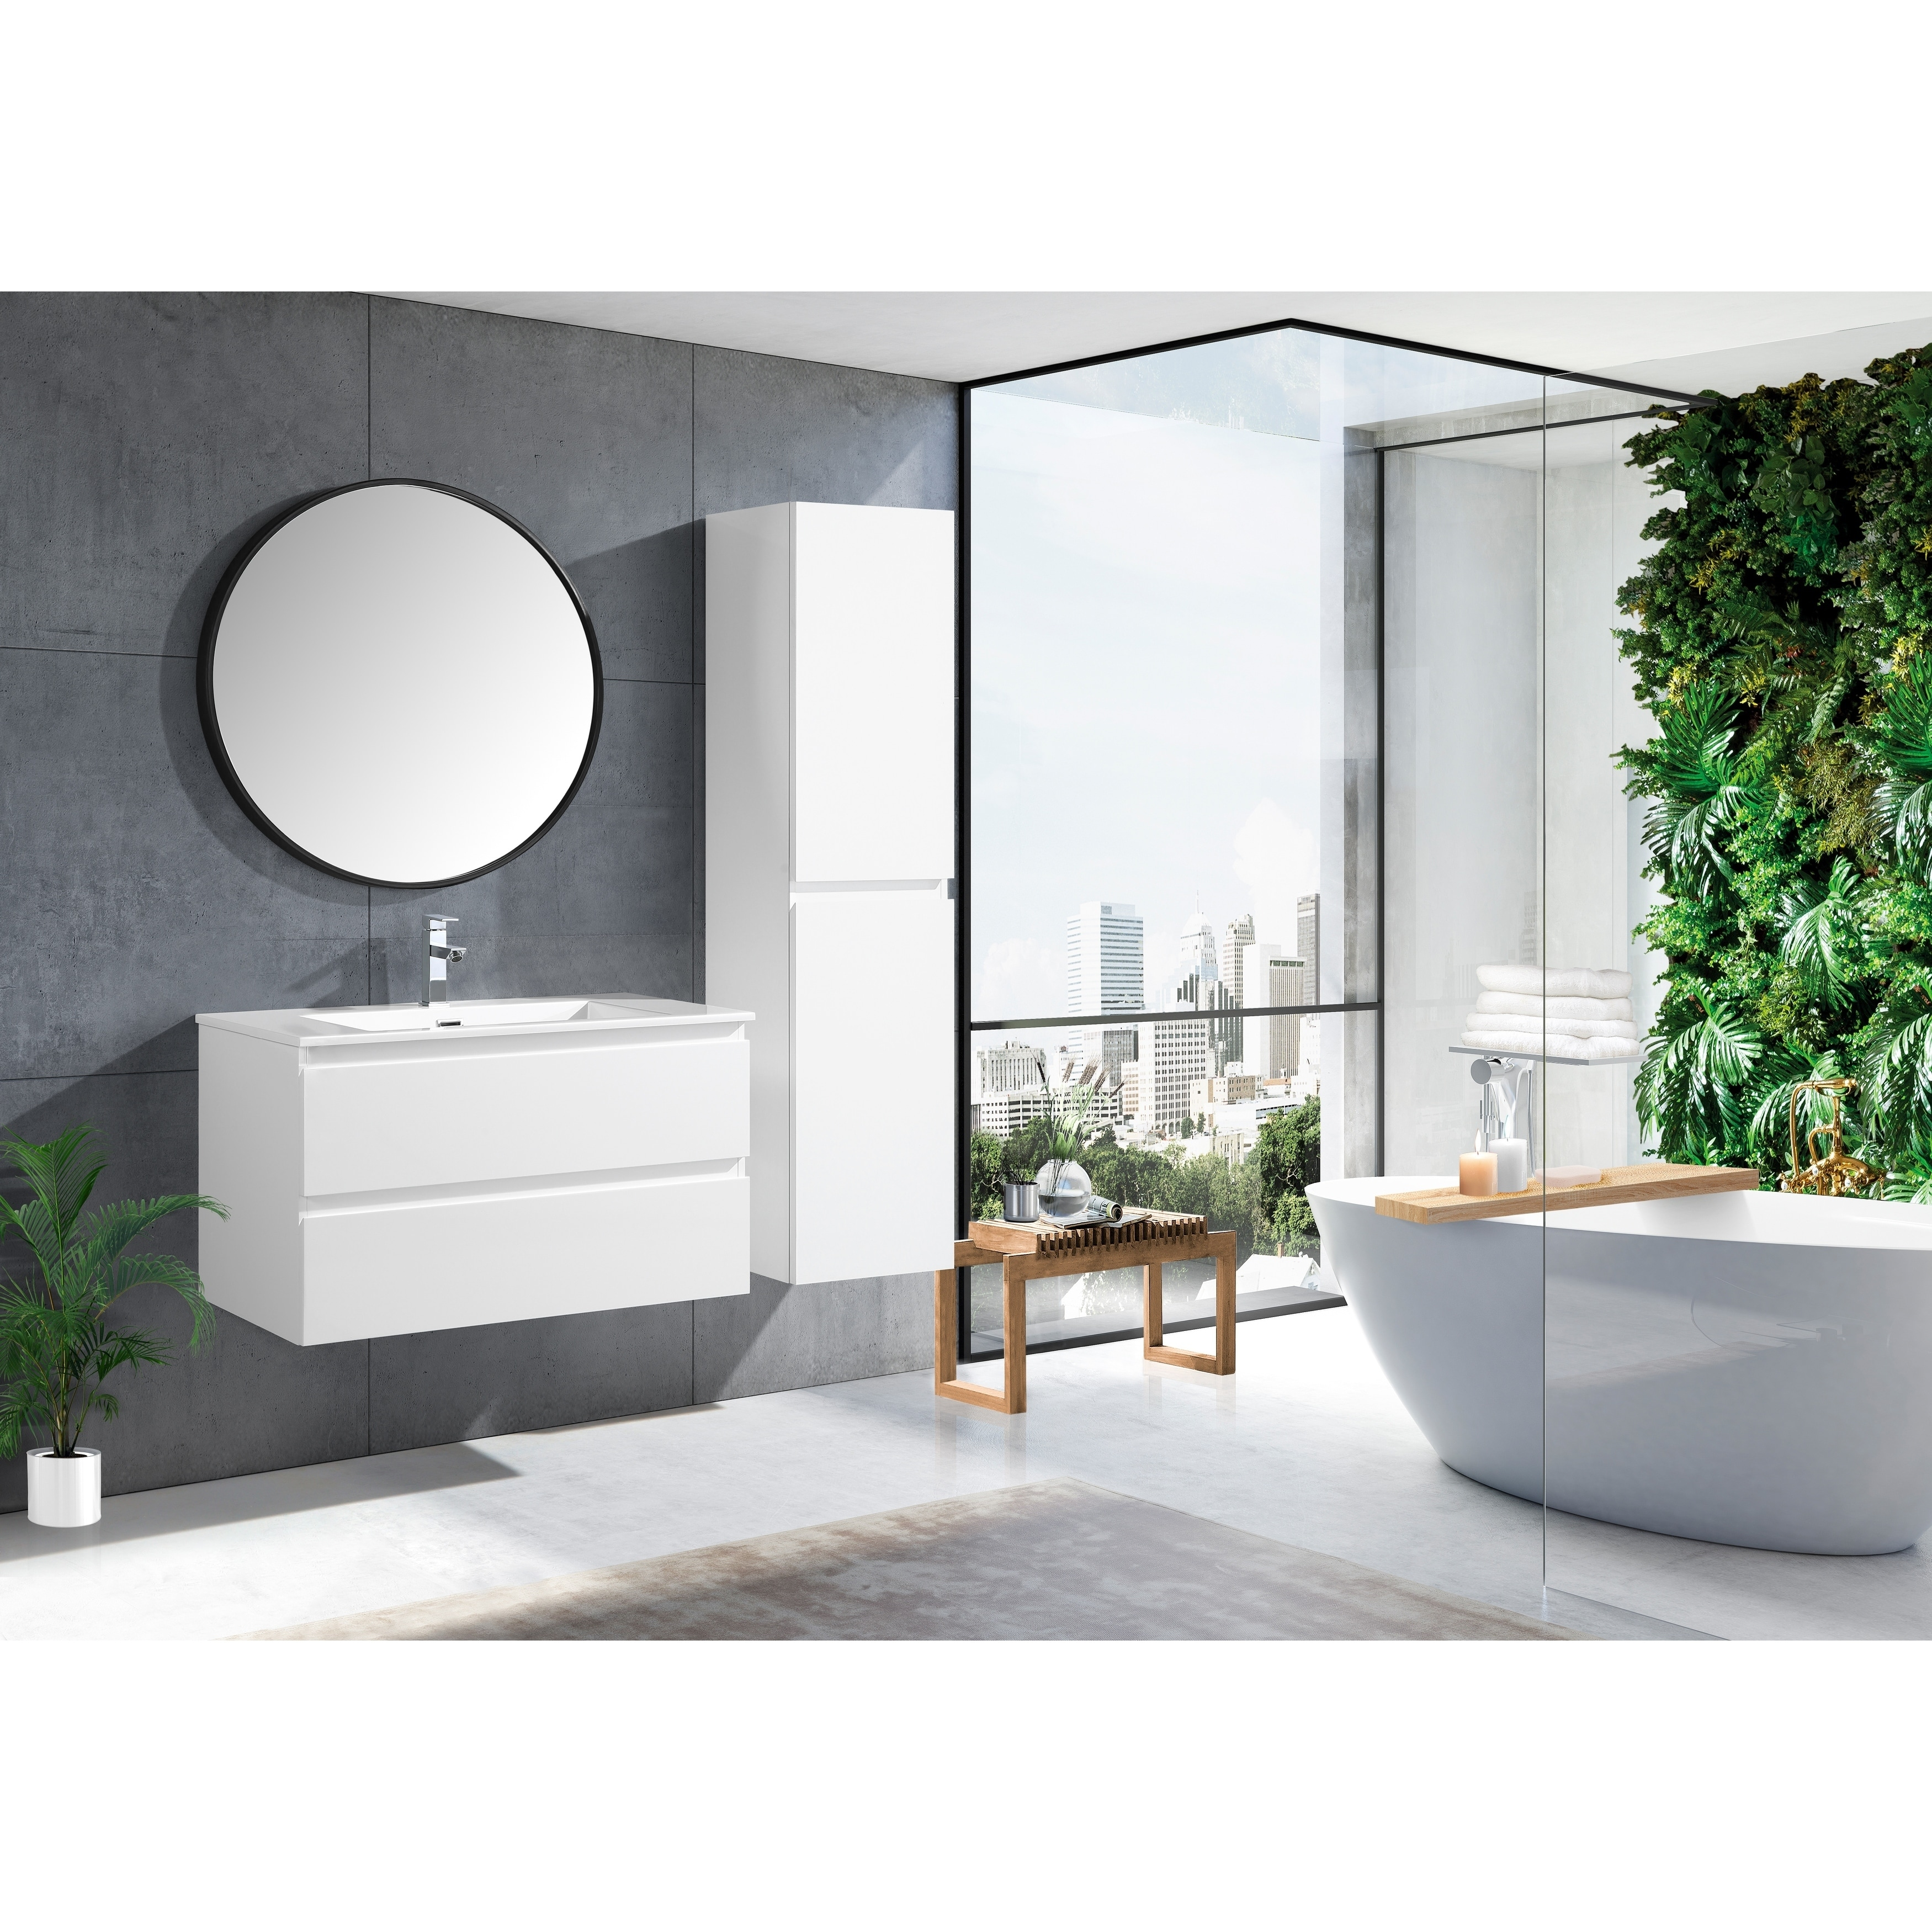 Shop For The Frost Collection 36 Inch Floating Modern Bathroom Vanity Get Free Delivery On Everything At Overstock Your Online Furniture Outlet Store Get 5 In Rewards With Club O 20979057